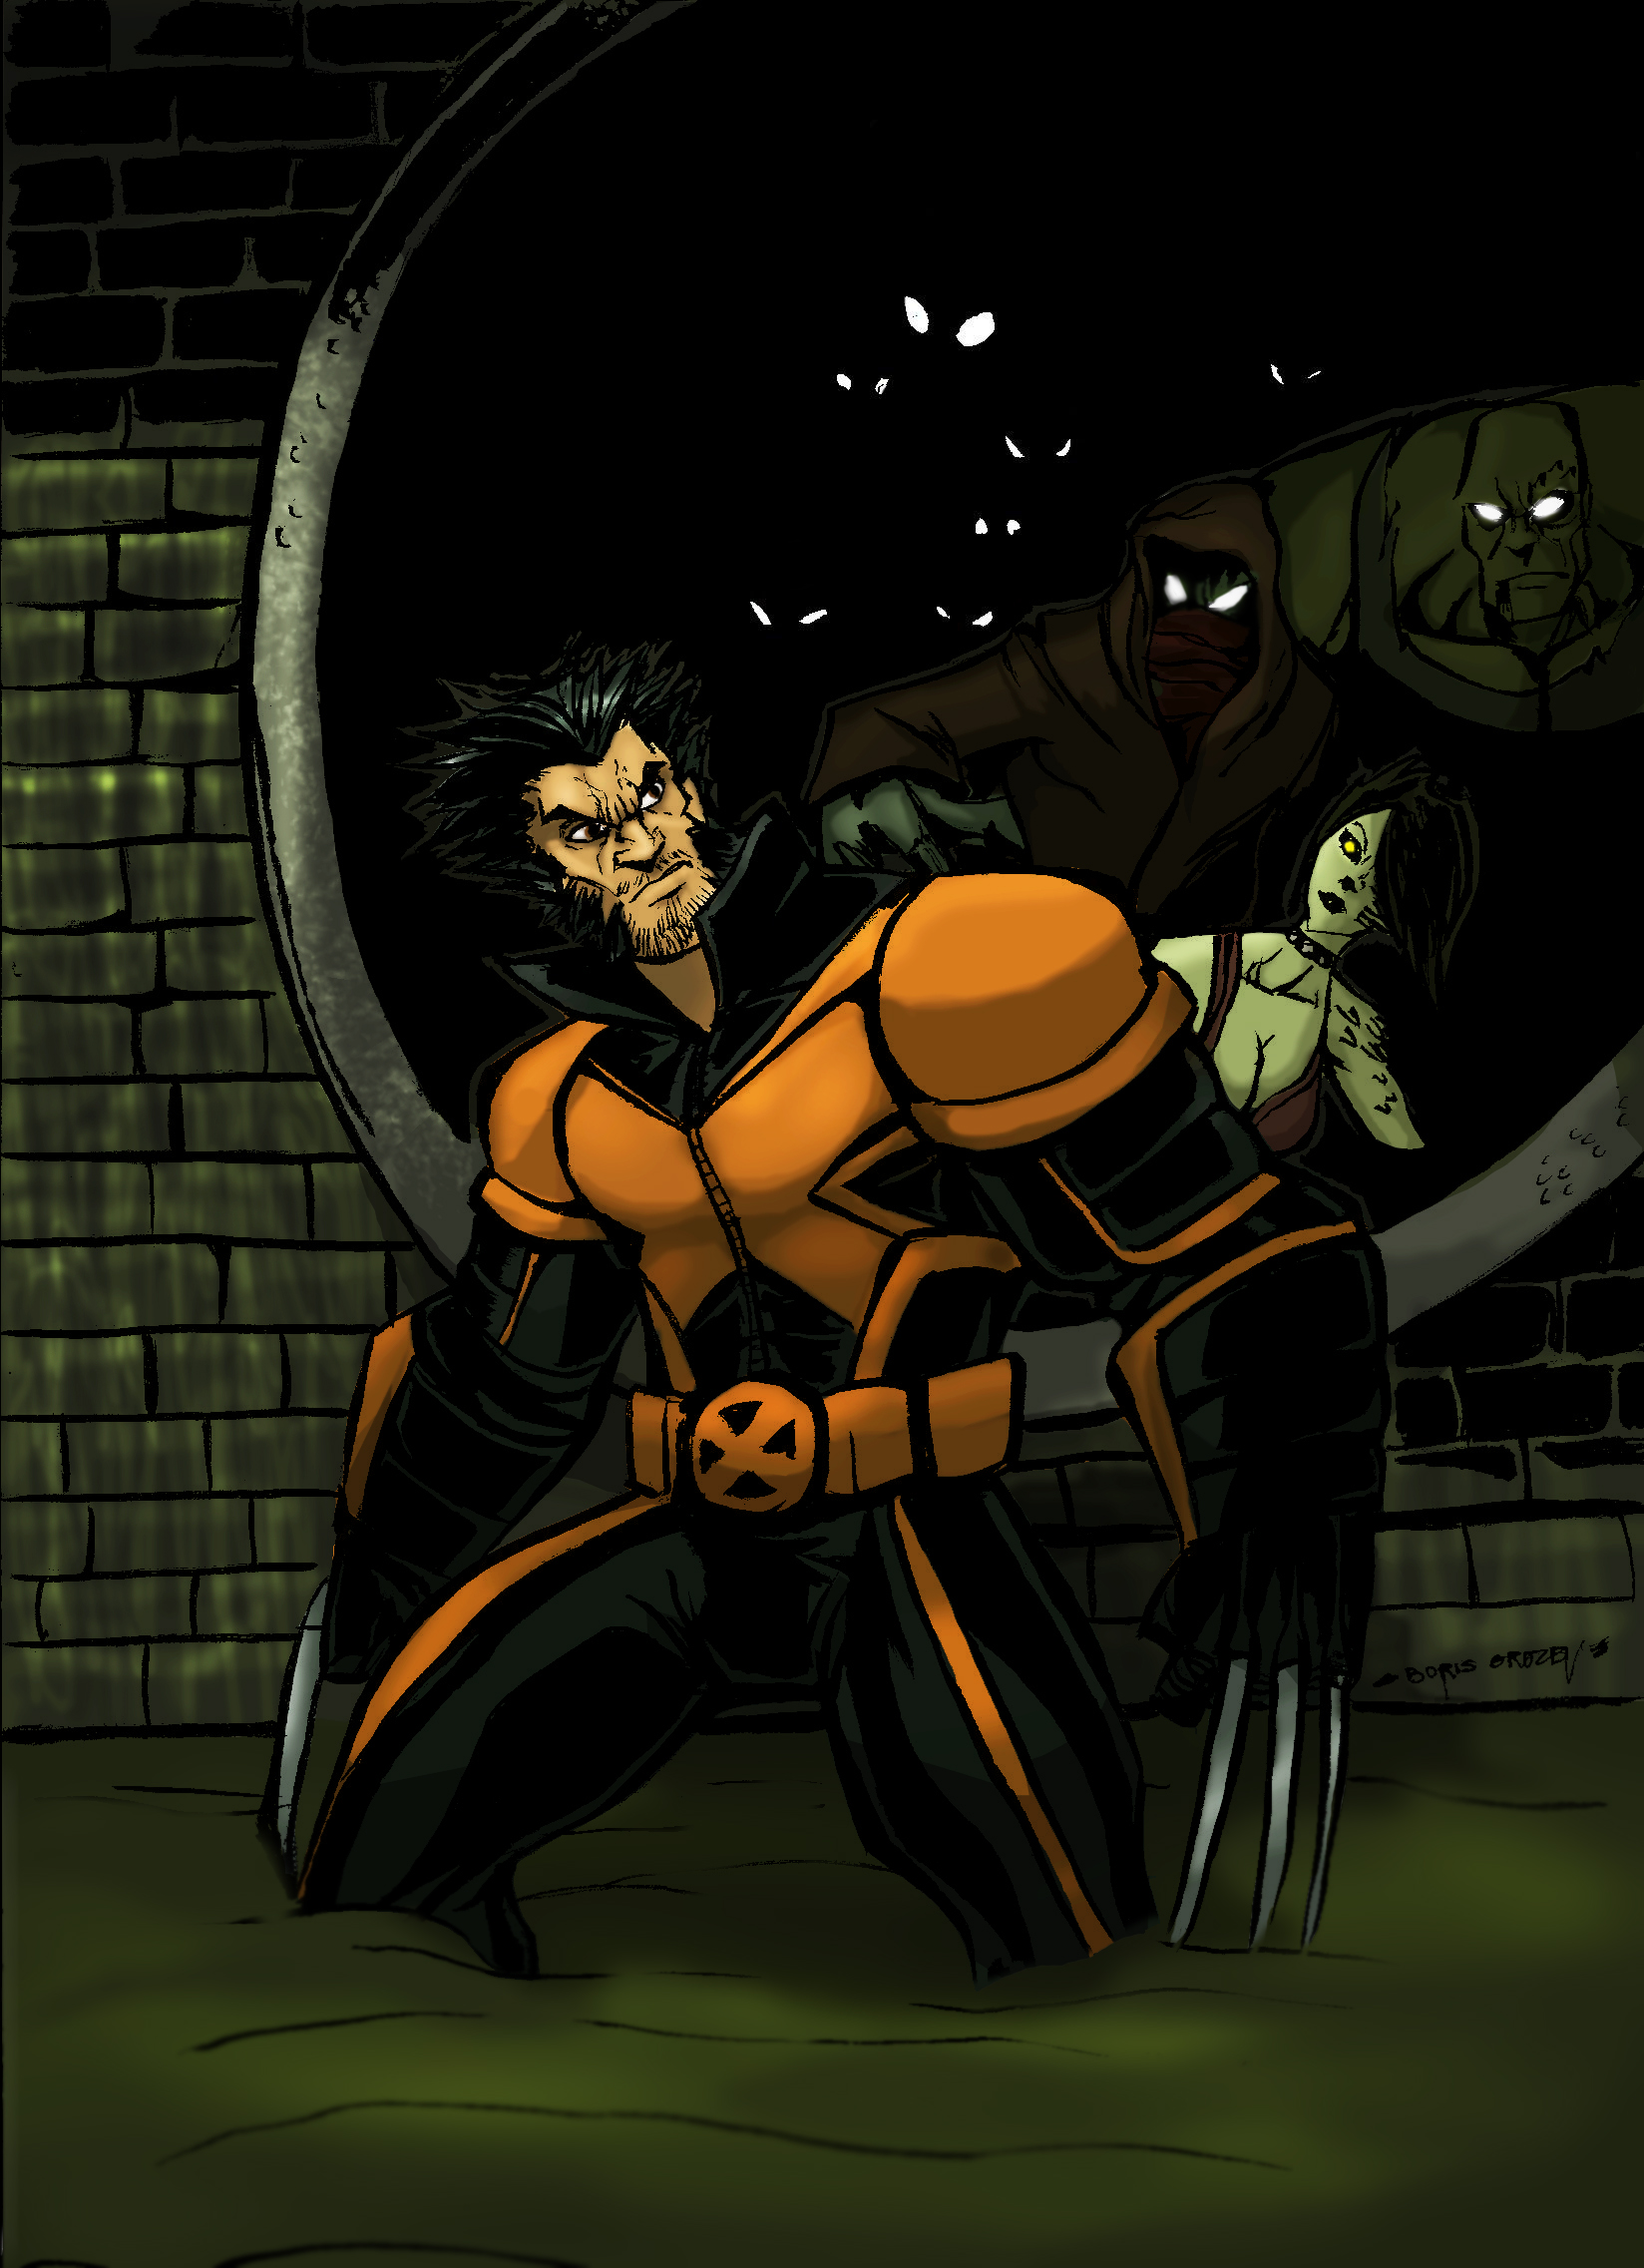 WOLVERINE IN THE SEWERS